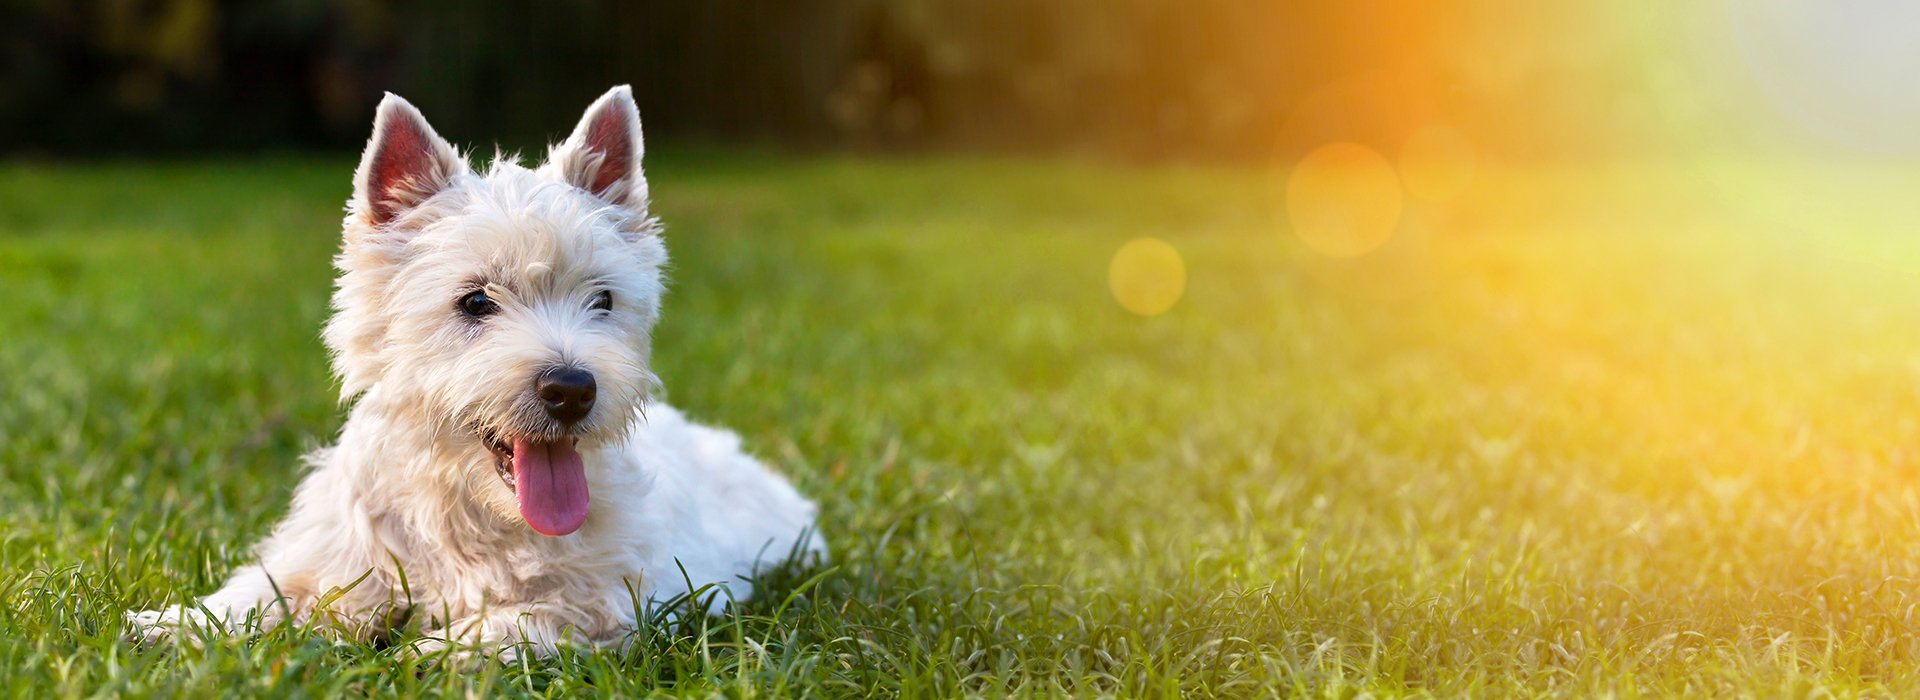 Adrian Home and Pet Sitter: Pet Services   Adrian, Tecumseh